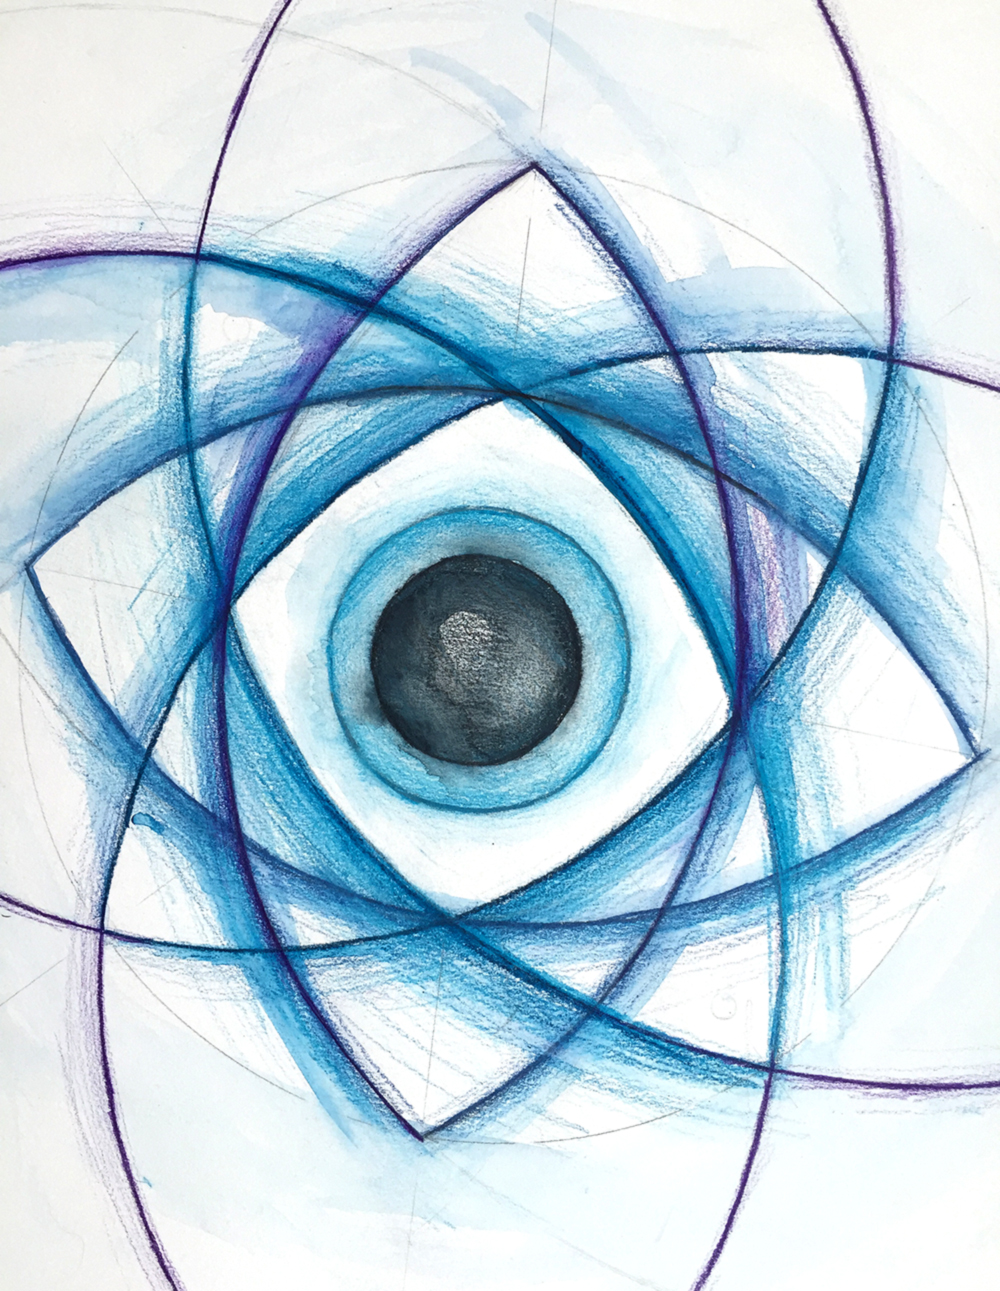 Imagining the Event Horizon | Watercolour pencil and paint |  2015 | © Cherie Aarts Coley